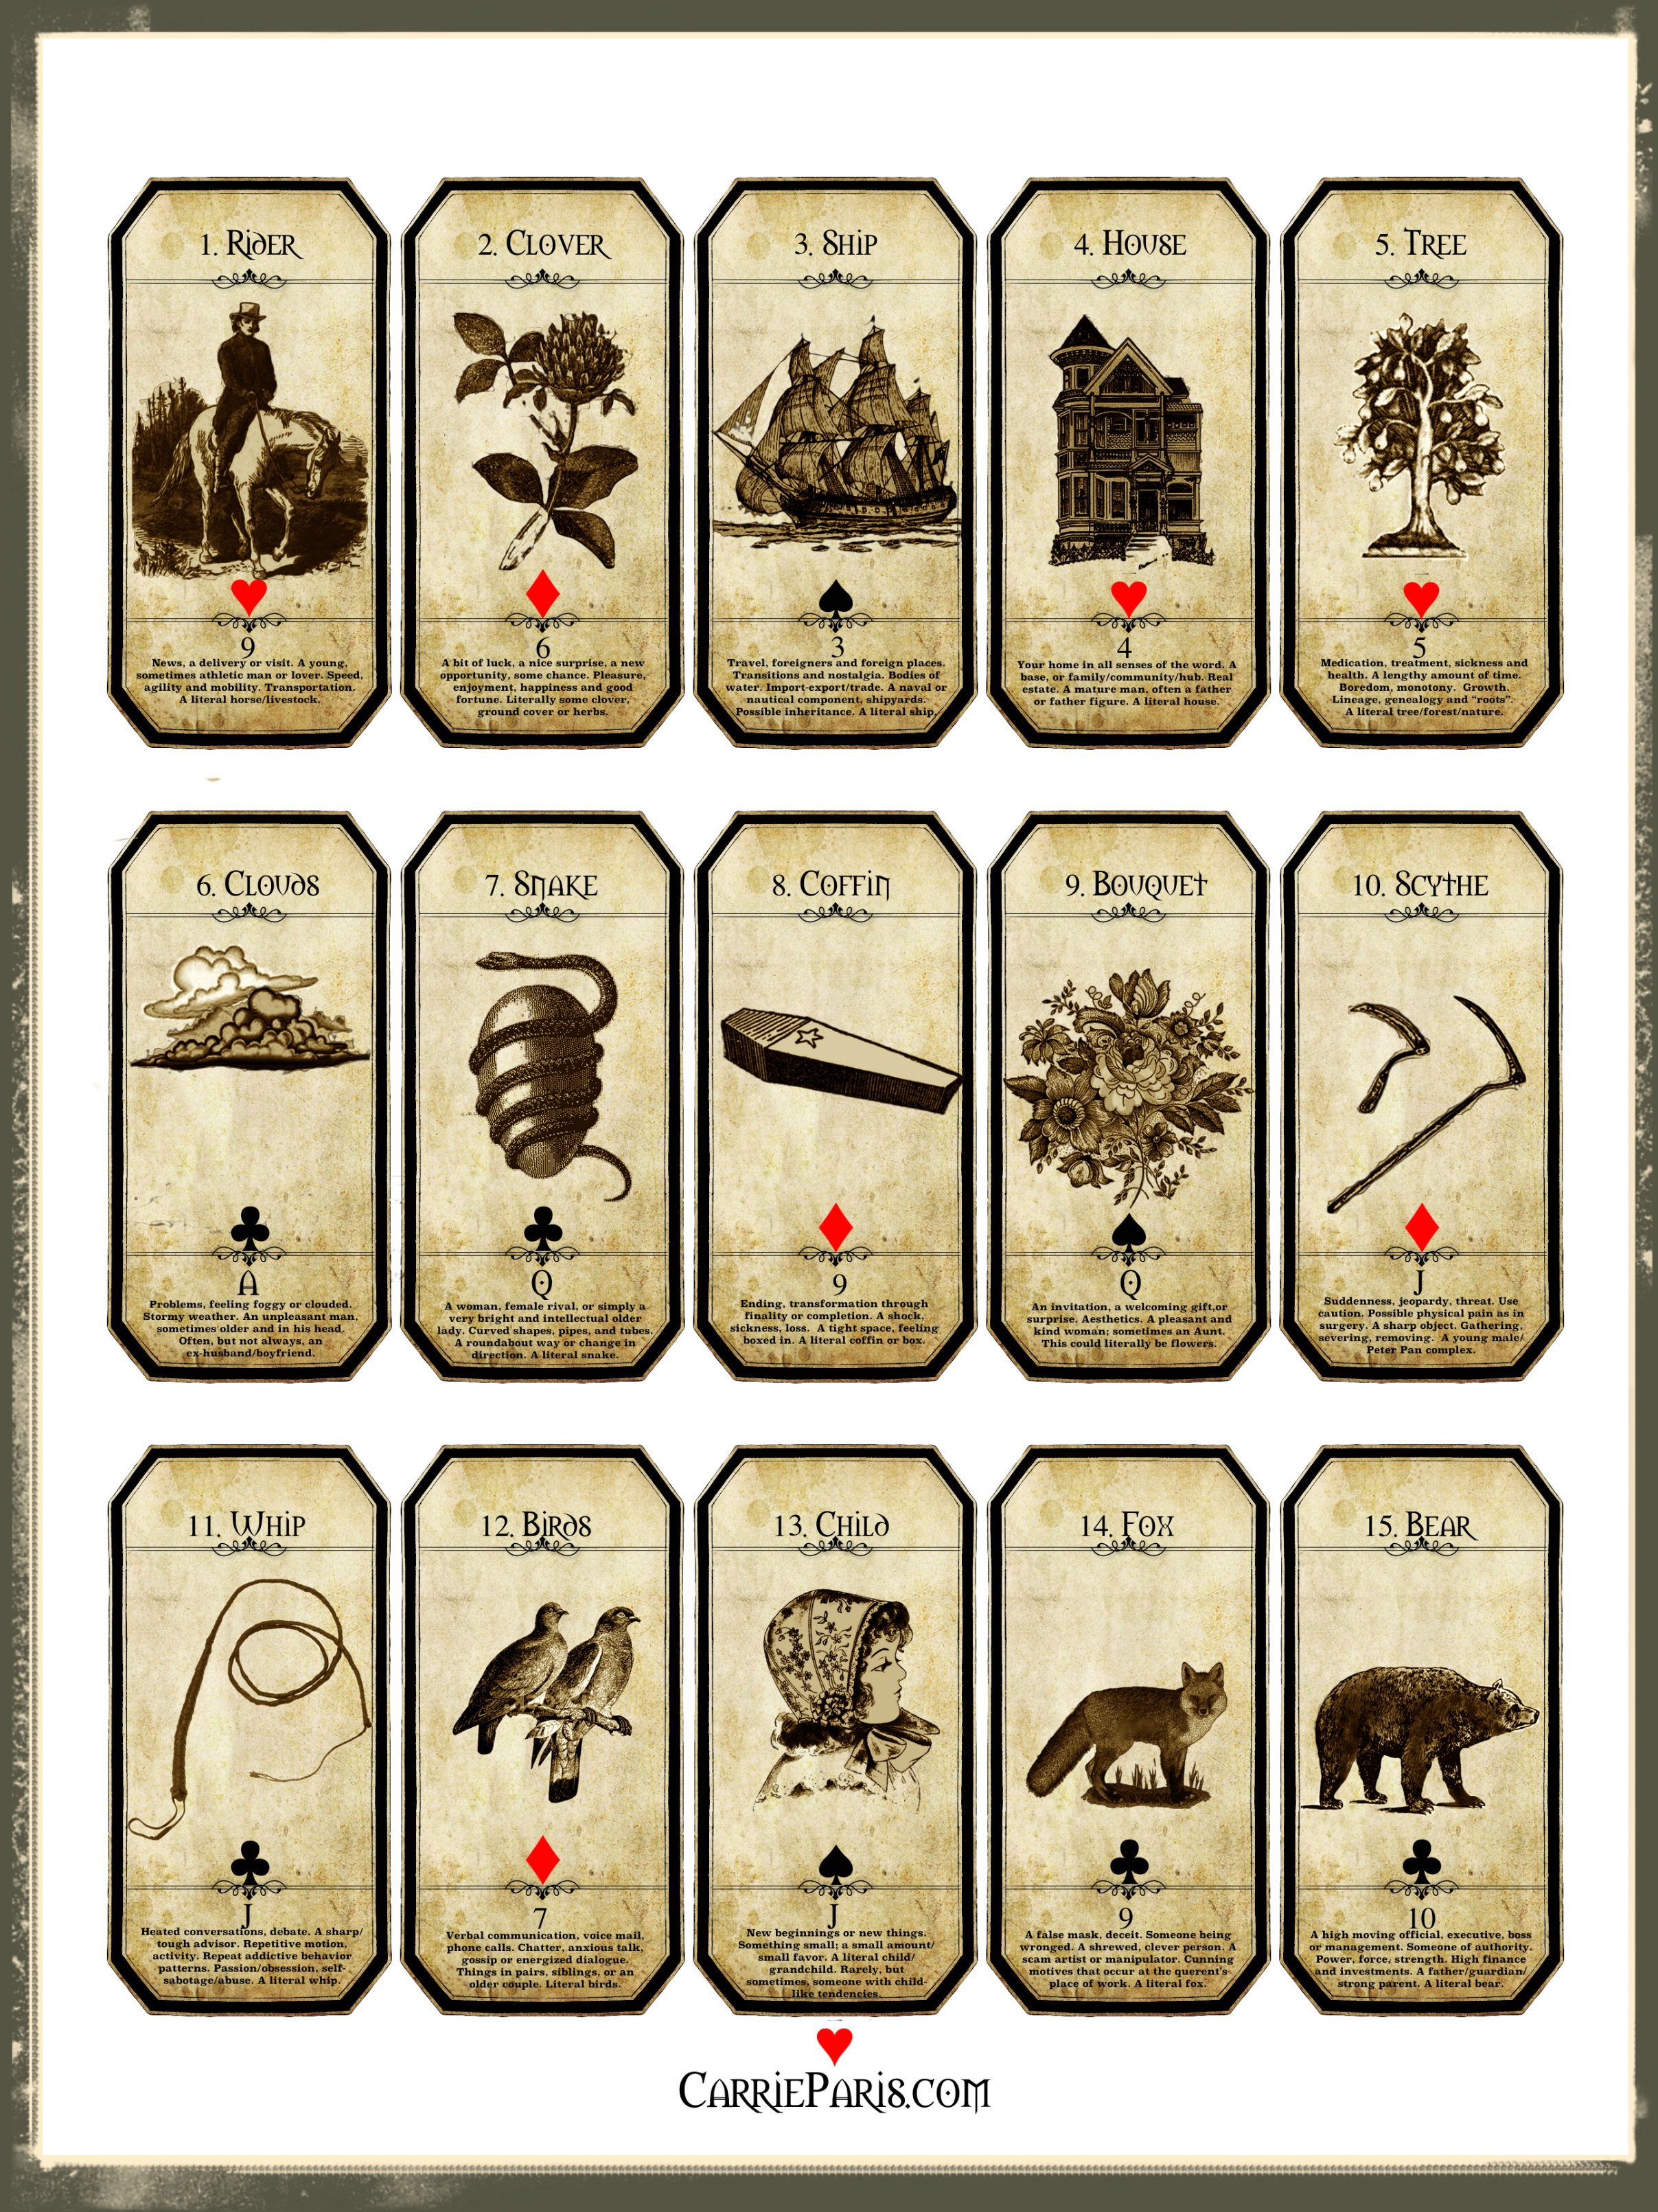 A Free Holiday Learning Deck - Carriepariscarrieparis - Printable Tarot Cards Pdf Free